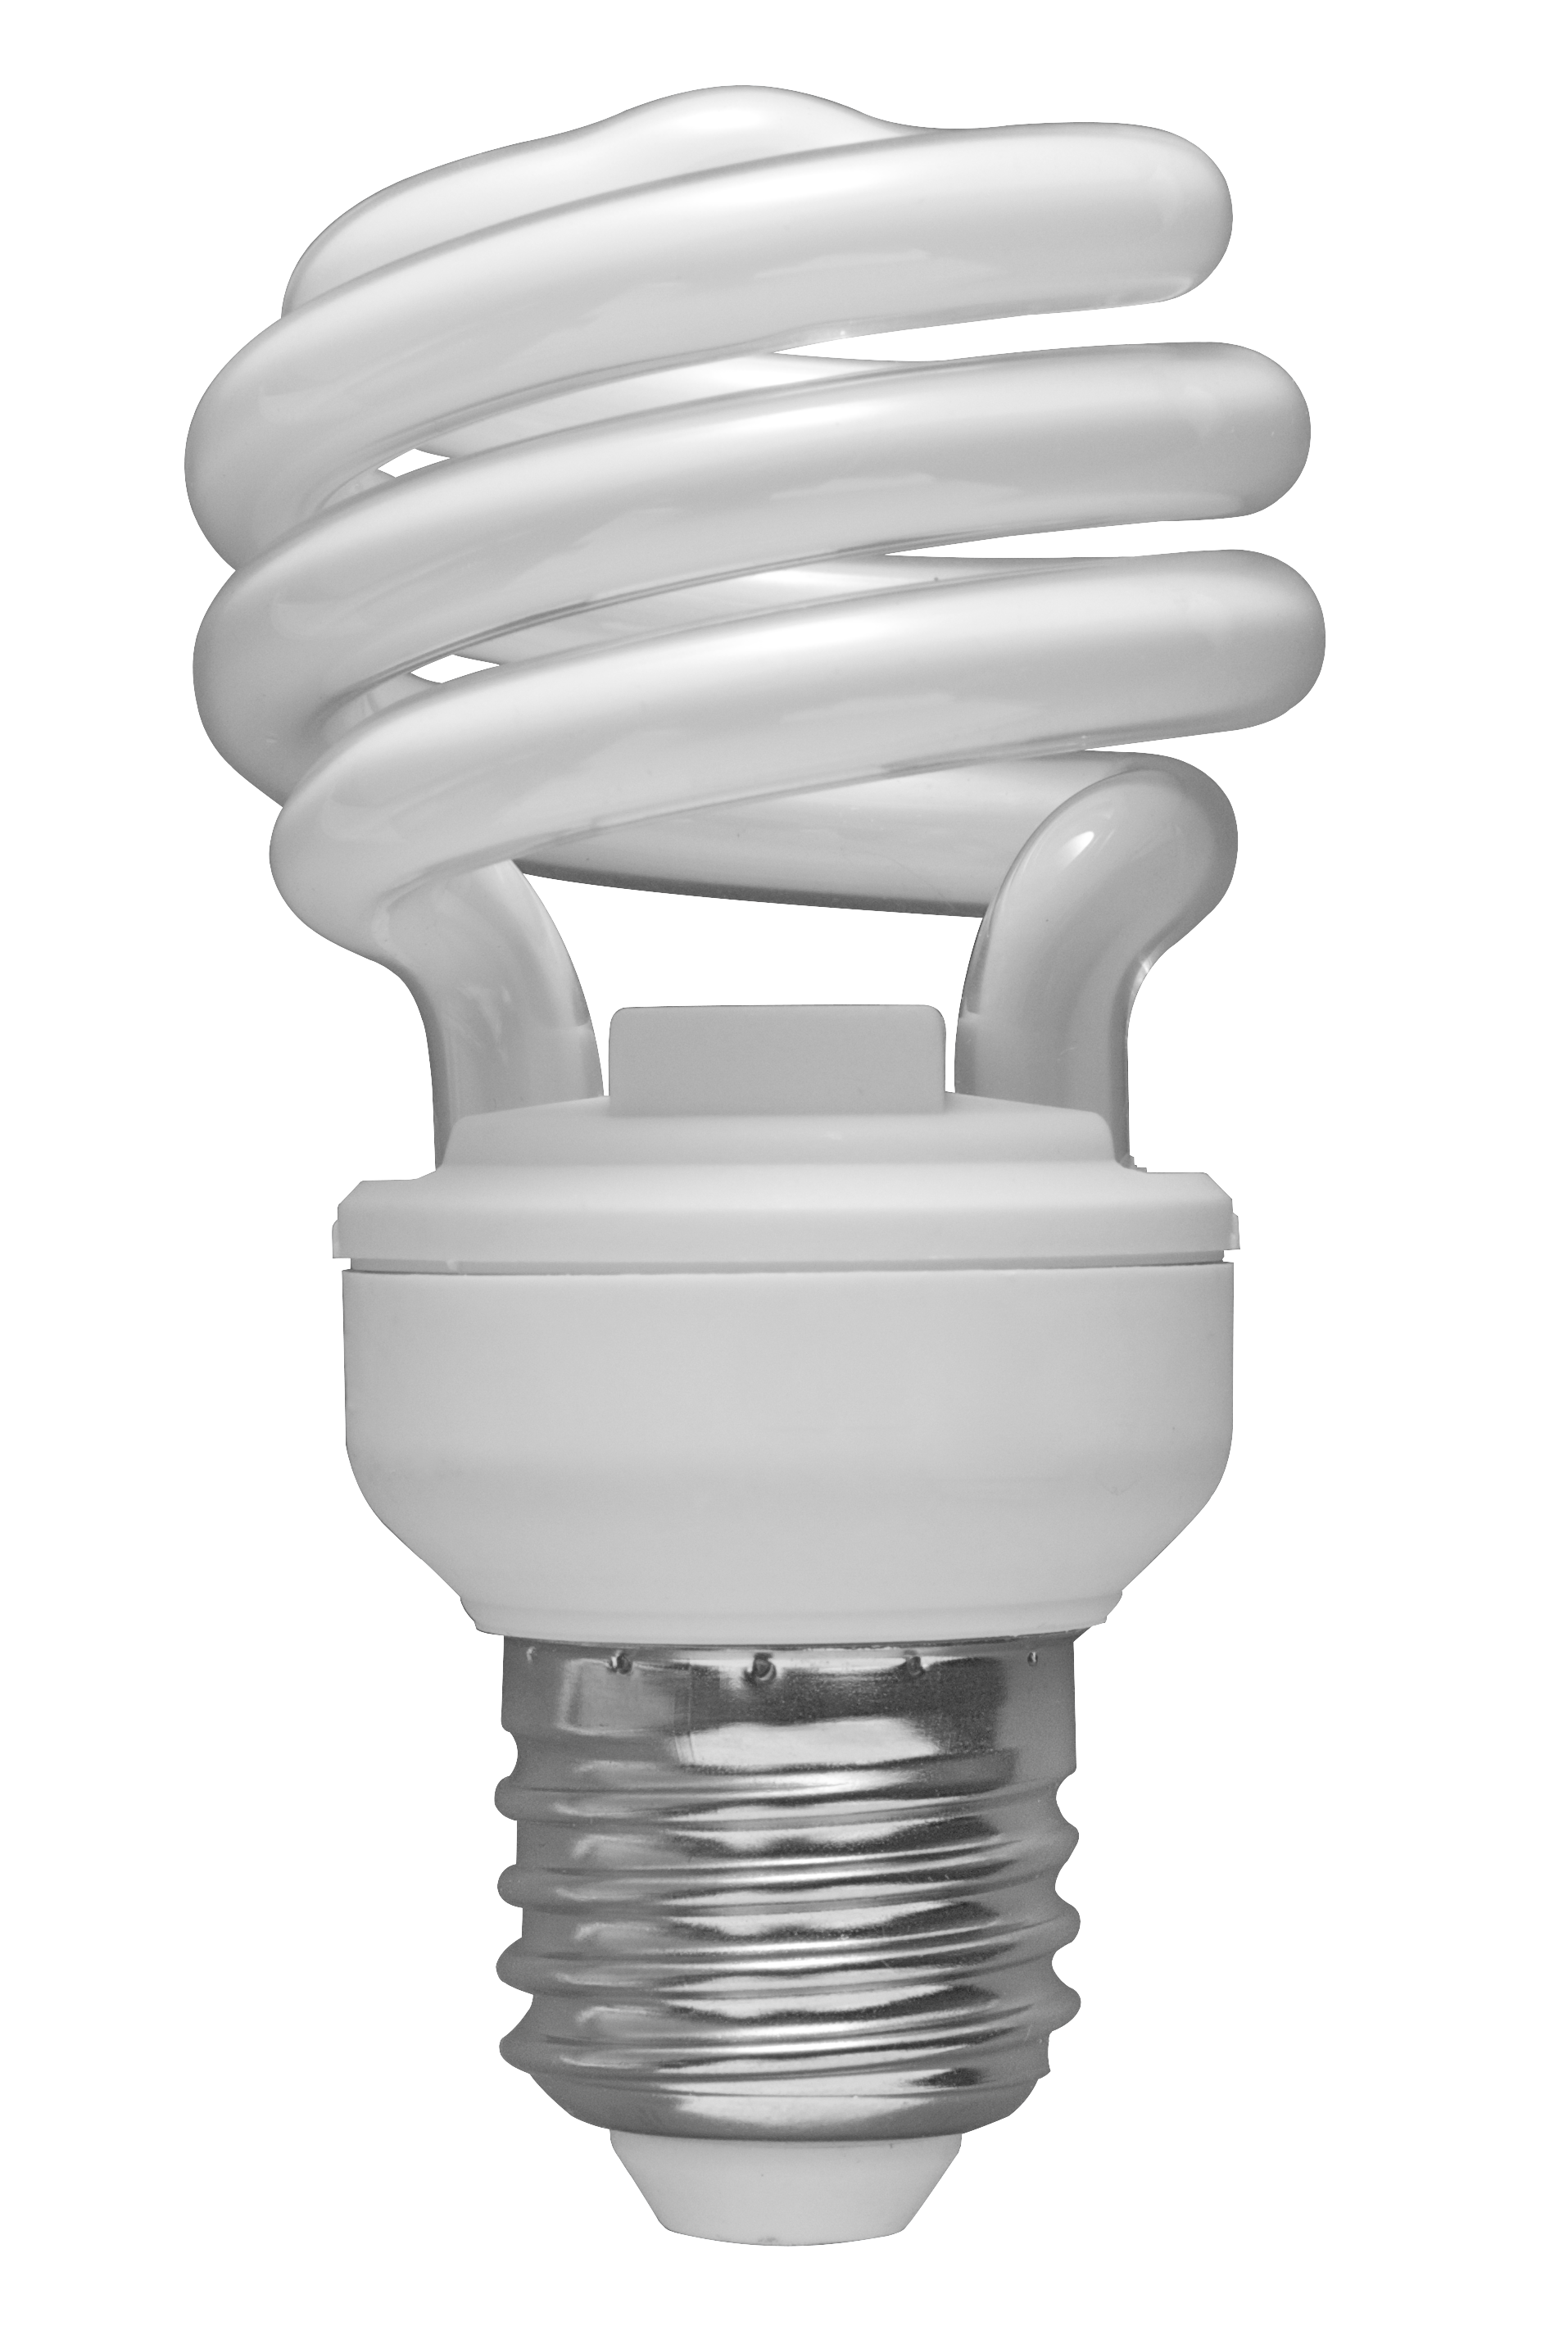 File:01 Spiral CFL Bulb 2010-03-08 (transparent back).png ... for Compact Fluorescent Light Bulbs Png  45ifm